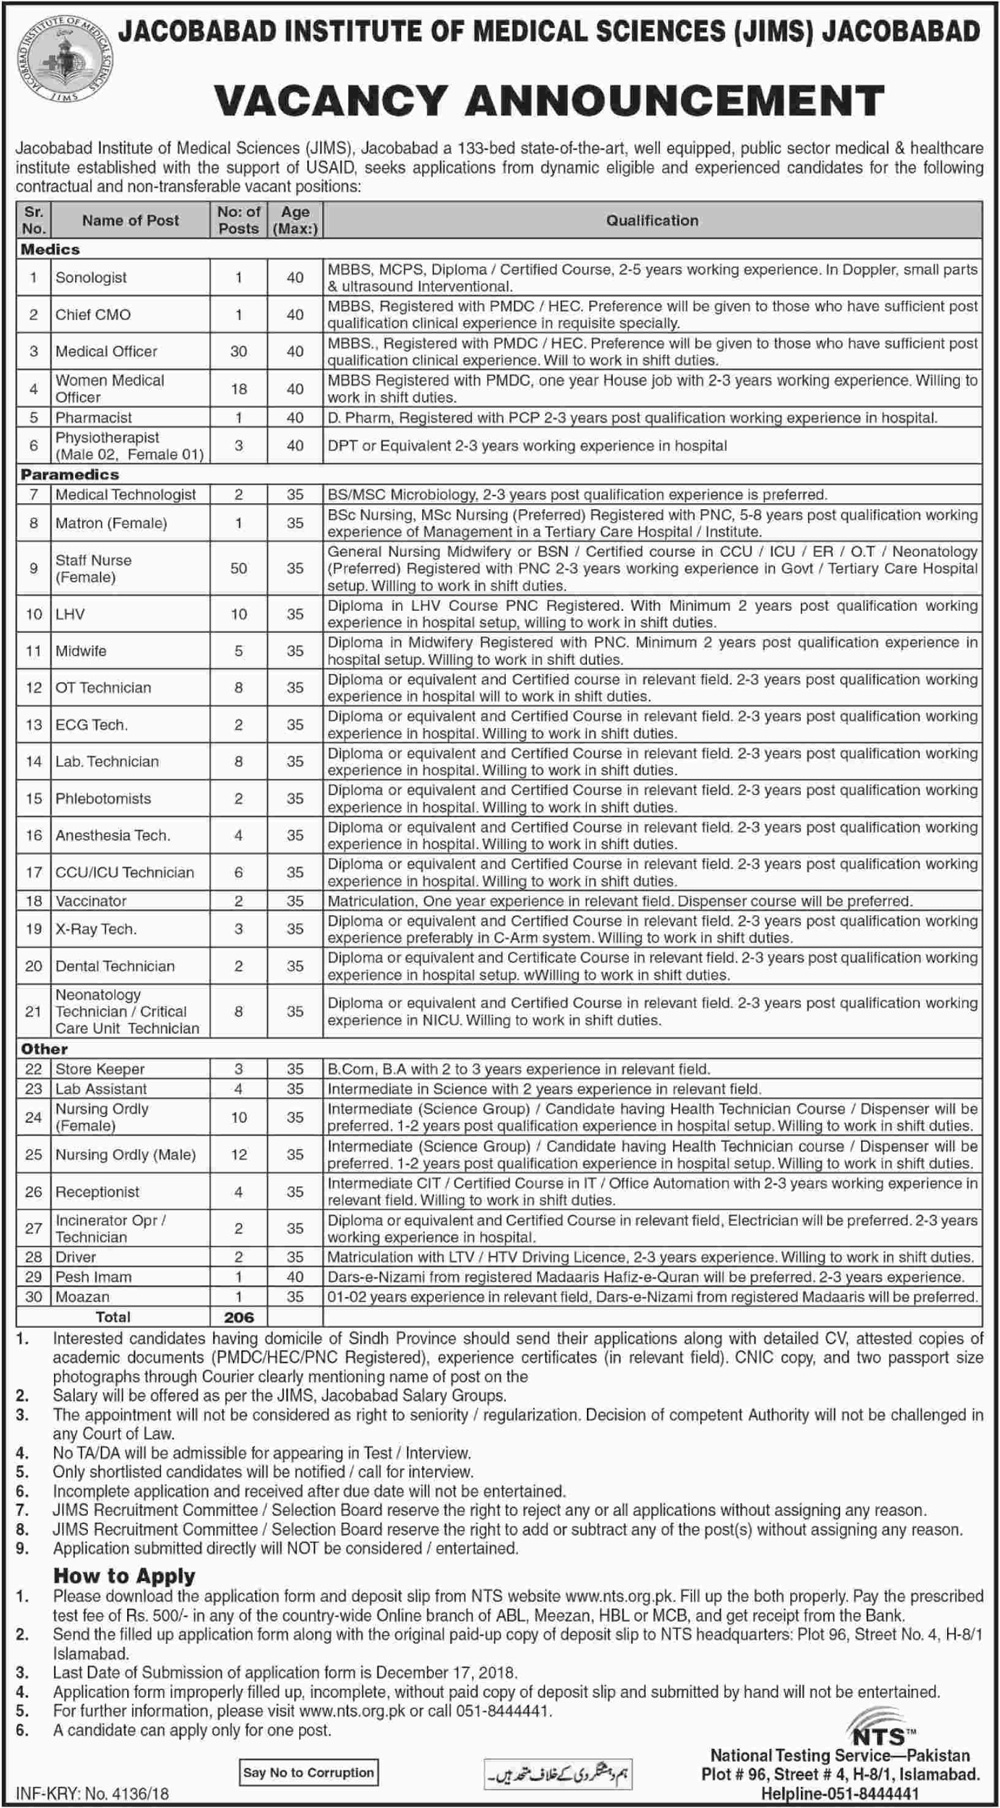 JIMS Jacobabad Institute of Medical Sciences Jobs Via NTS